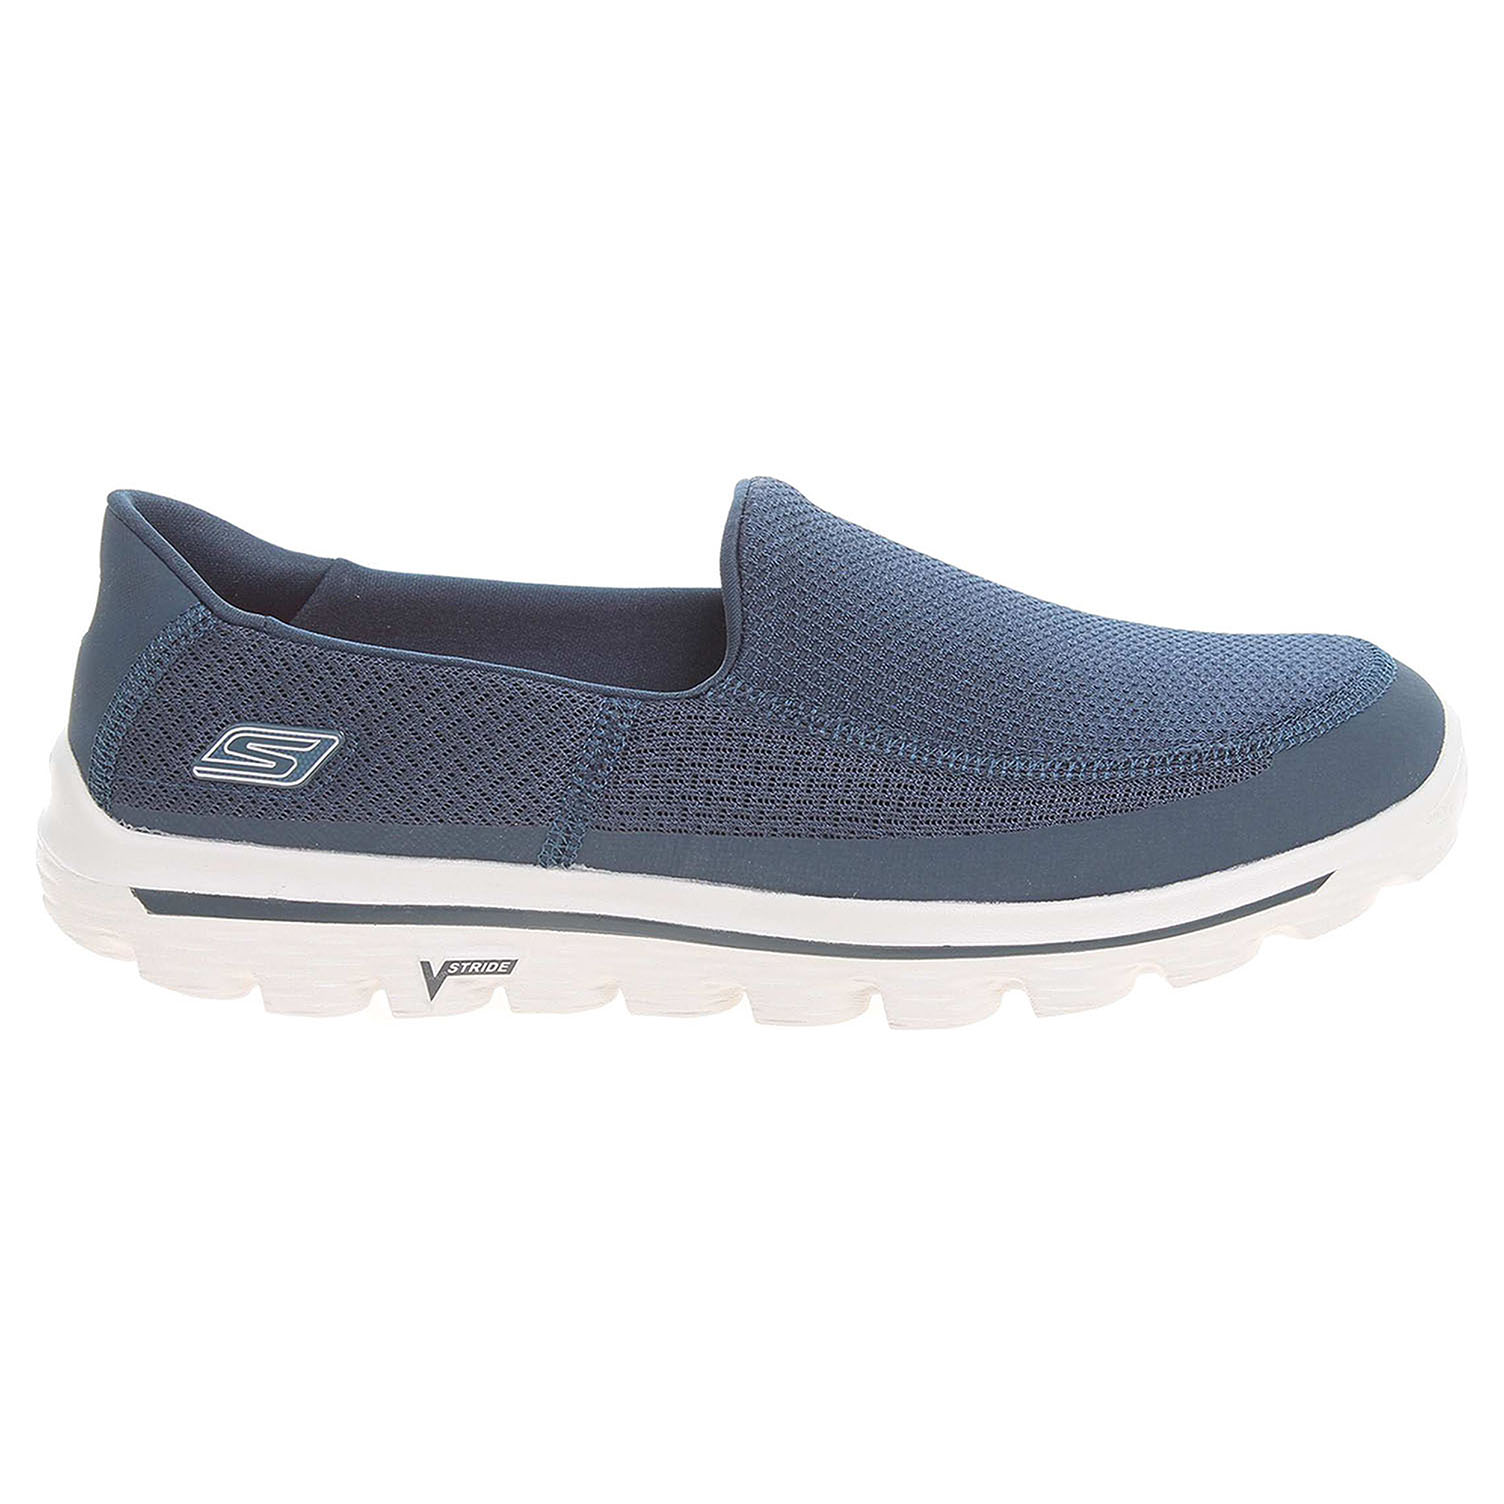 Skechers Go Walk 2 navy-gray